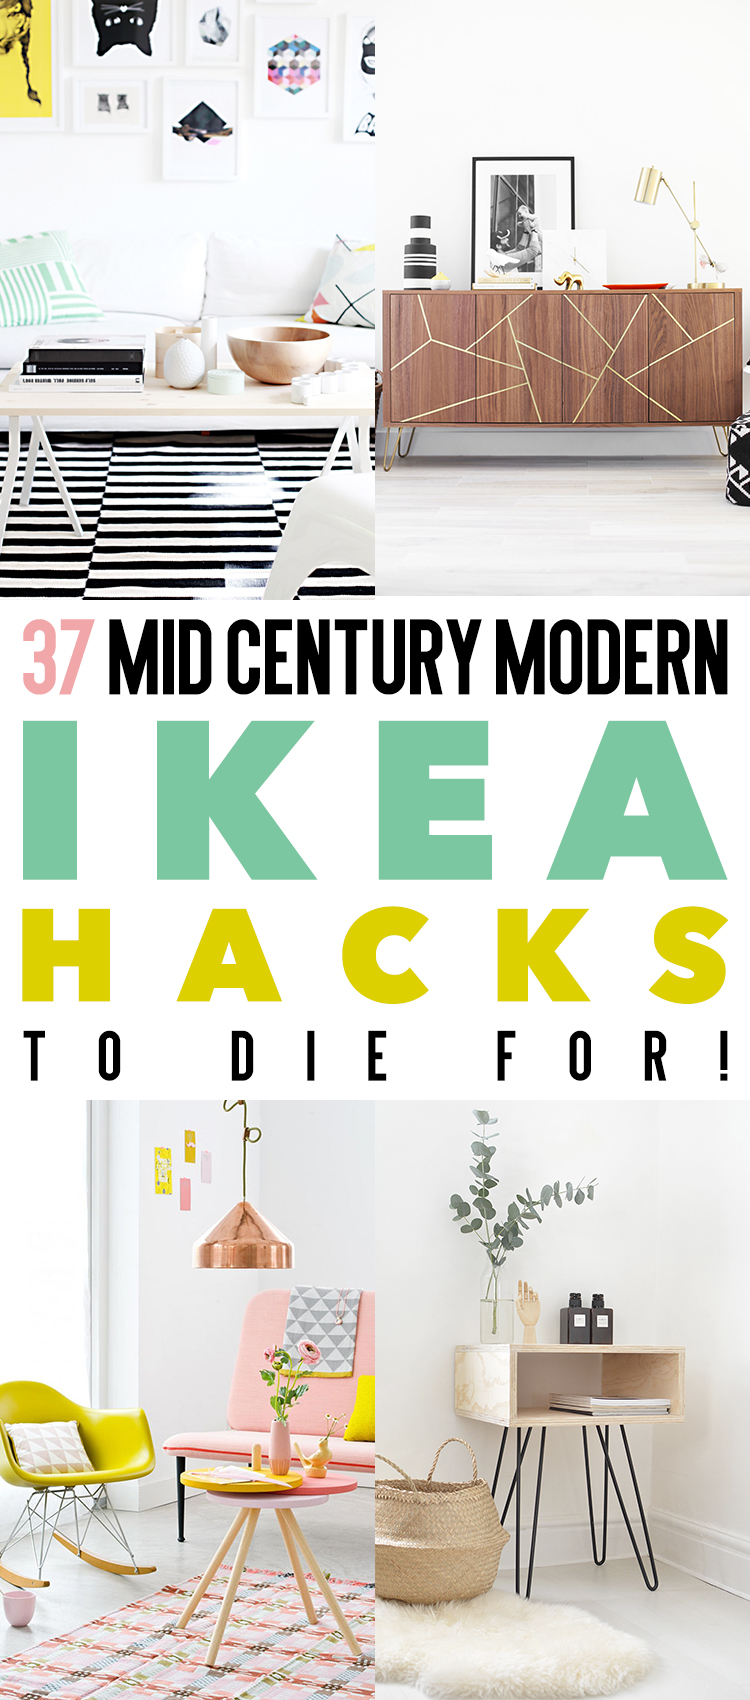 37 IKEA furniture hacks for anyone that loves mid century modern design